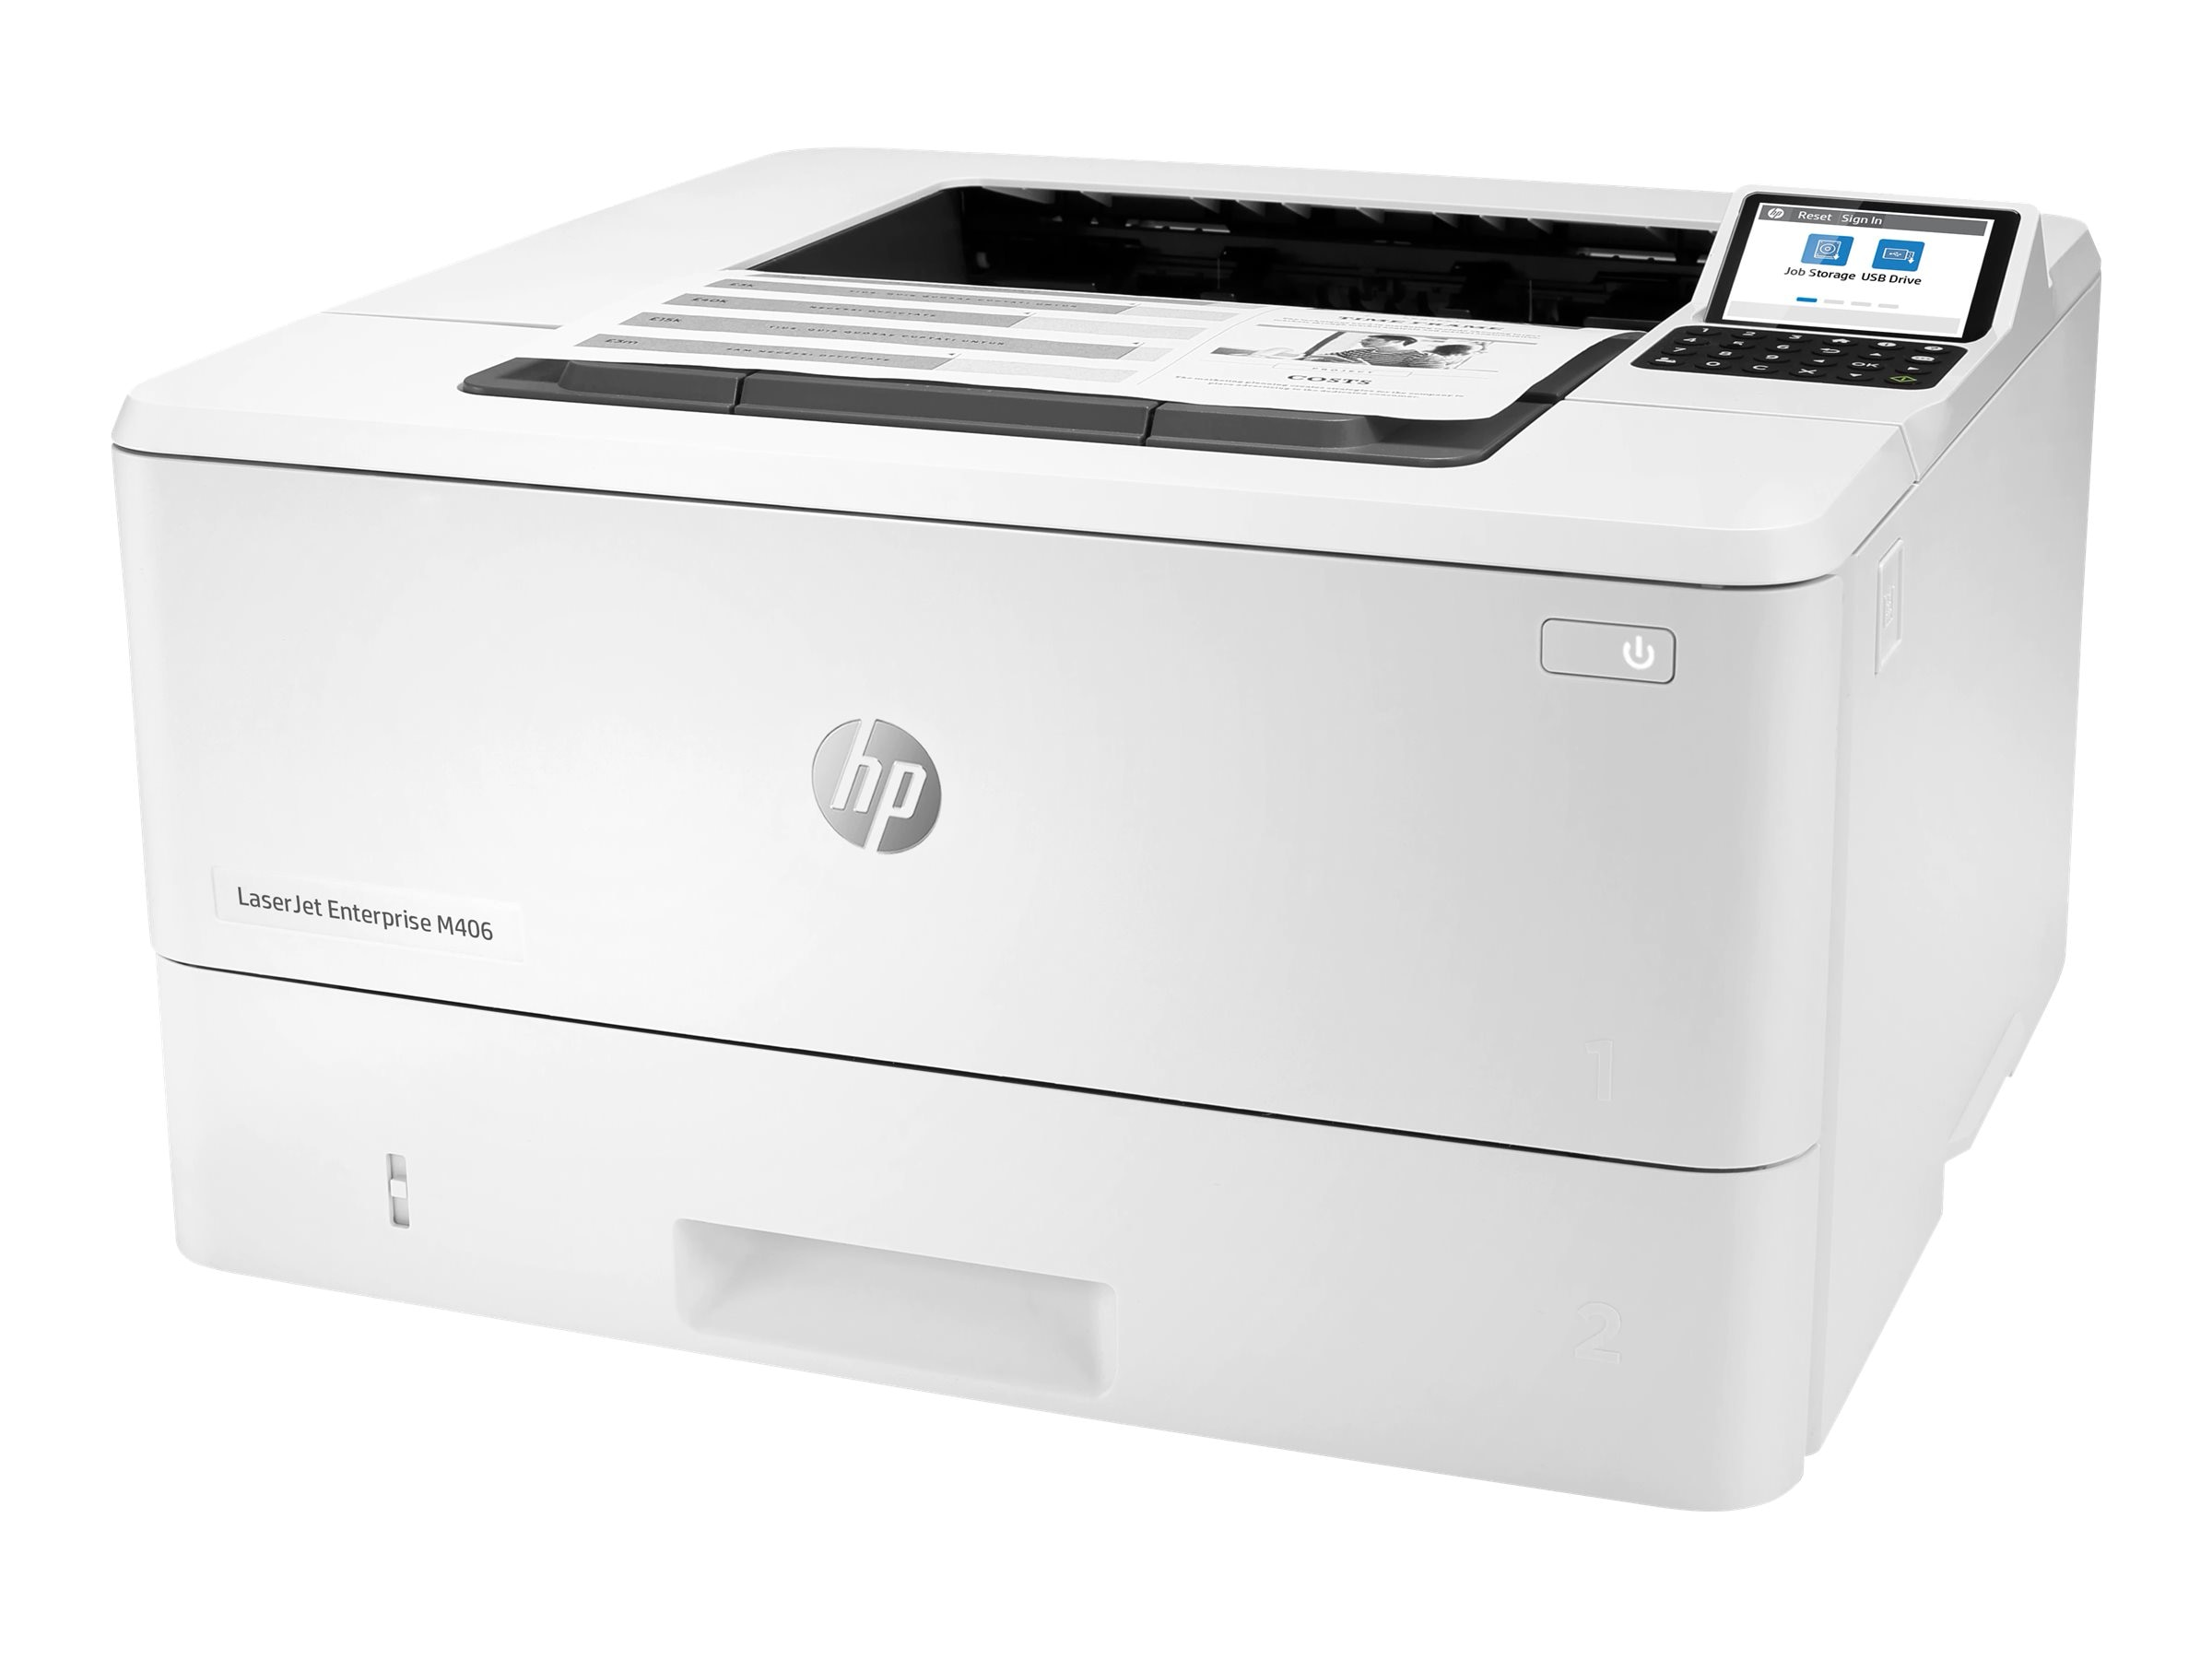 HP LaserJet Enterprise M406dn Mono Laser Printer, Demo (3PZ15A)